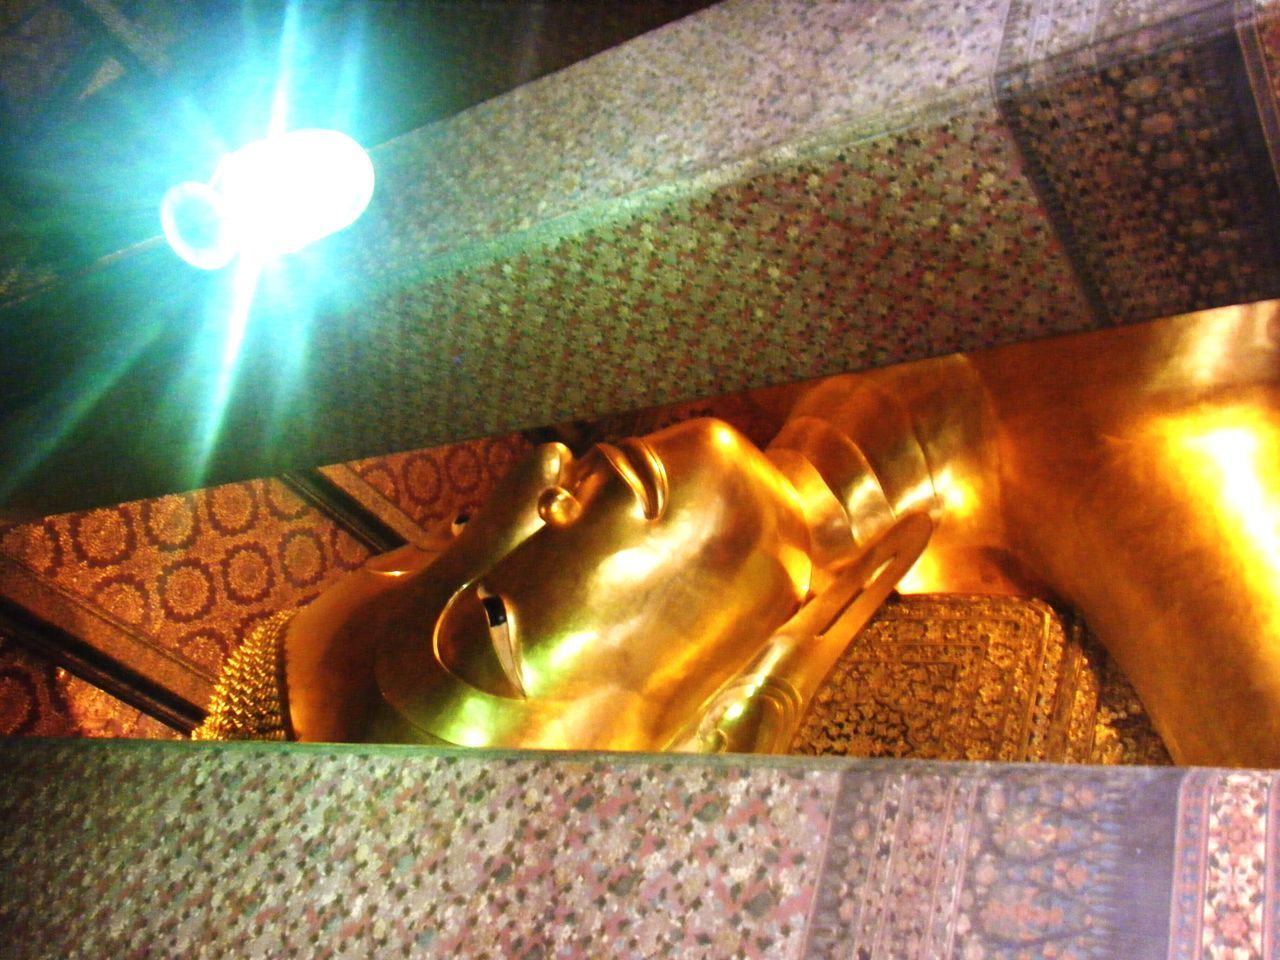 indoors, illuminated, gold colored, low angle view, close-up, no people, day